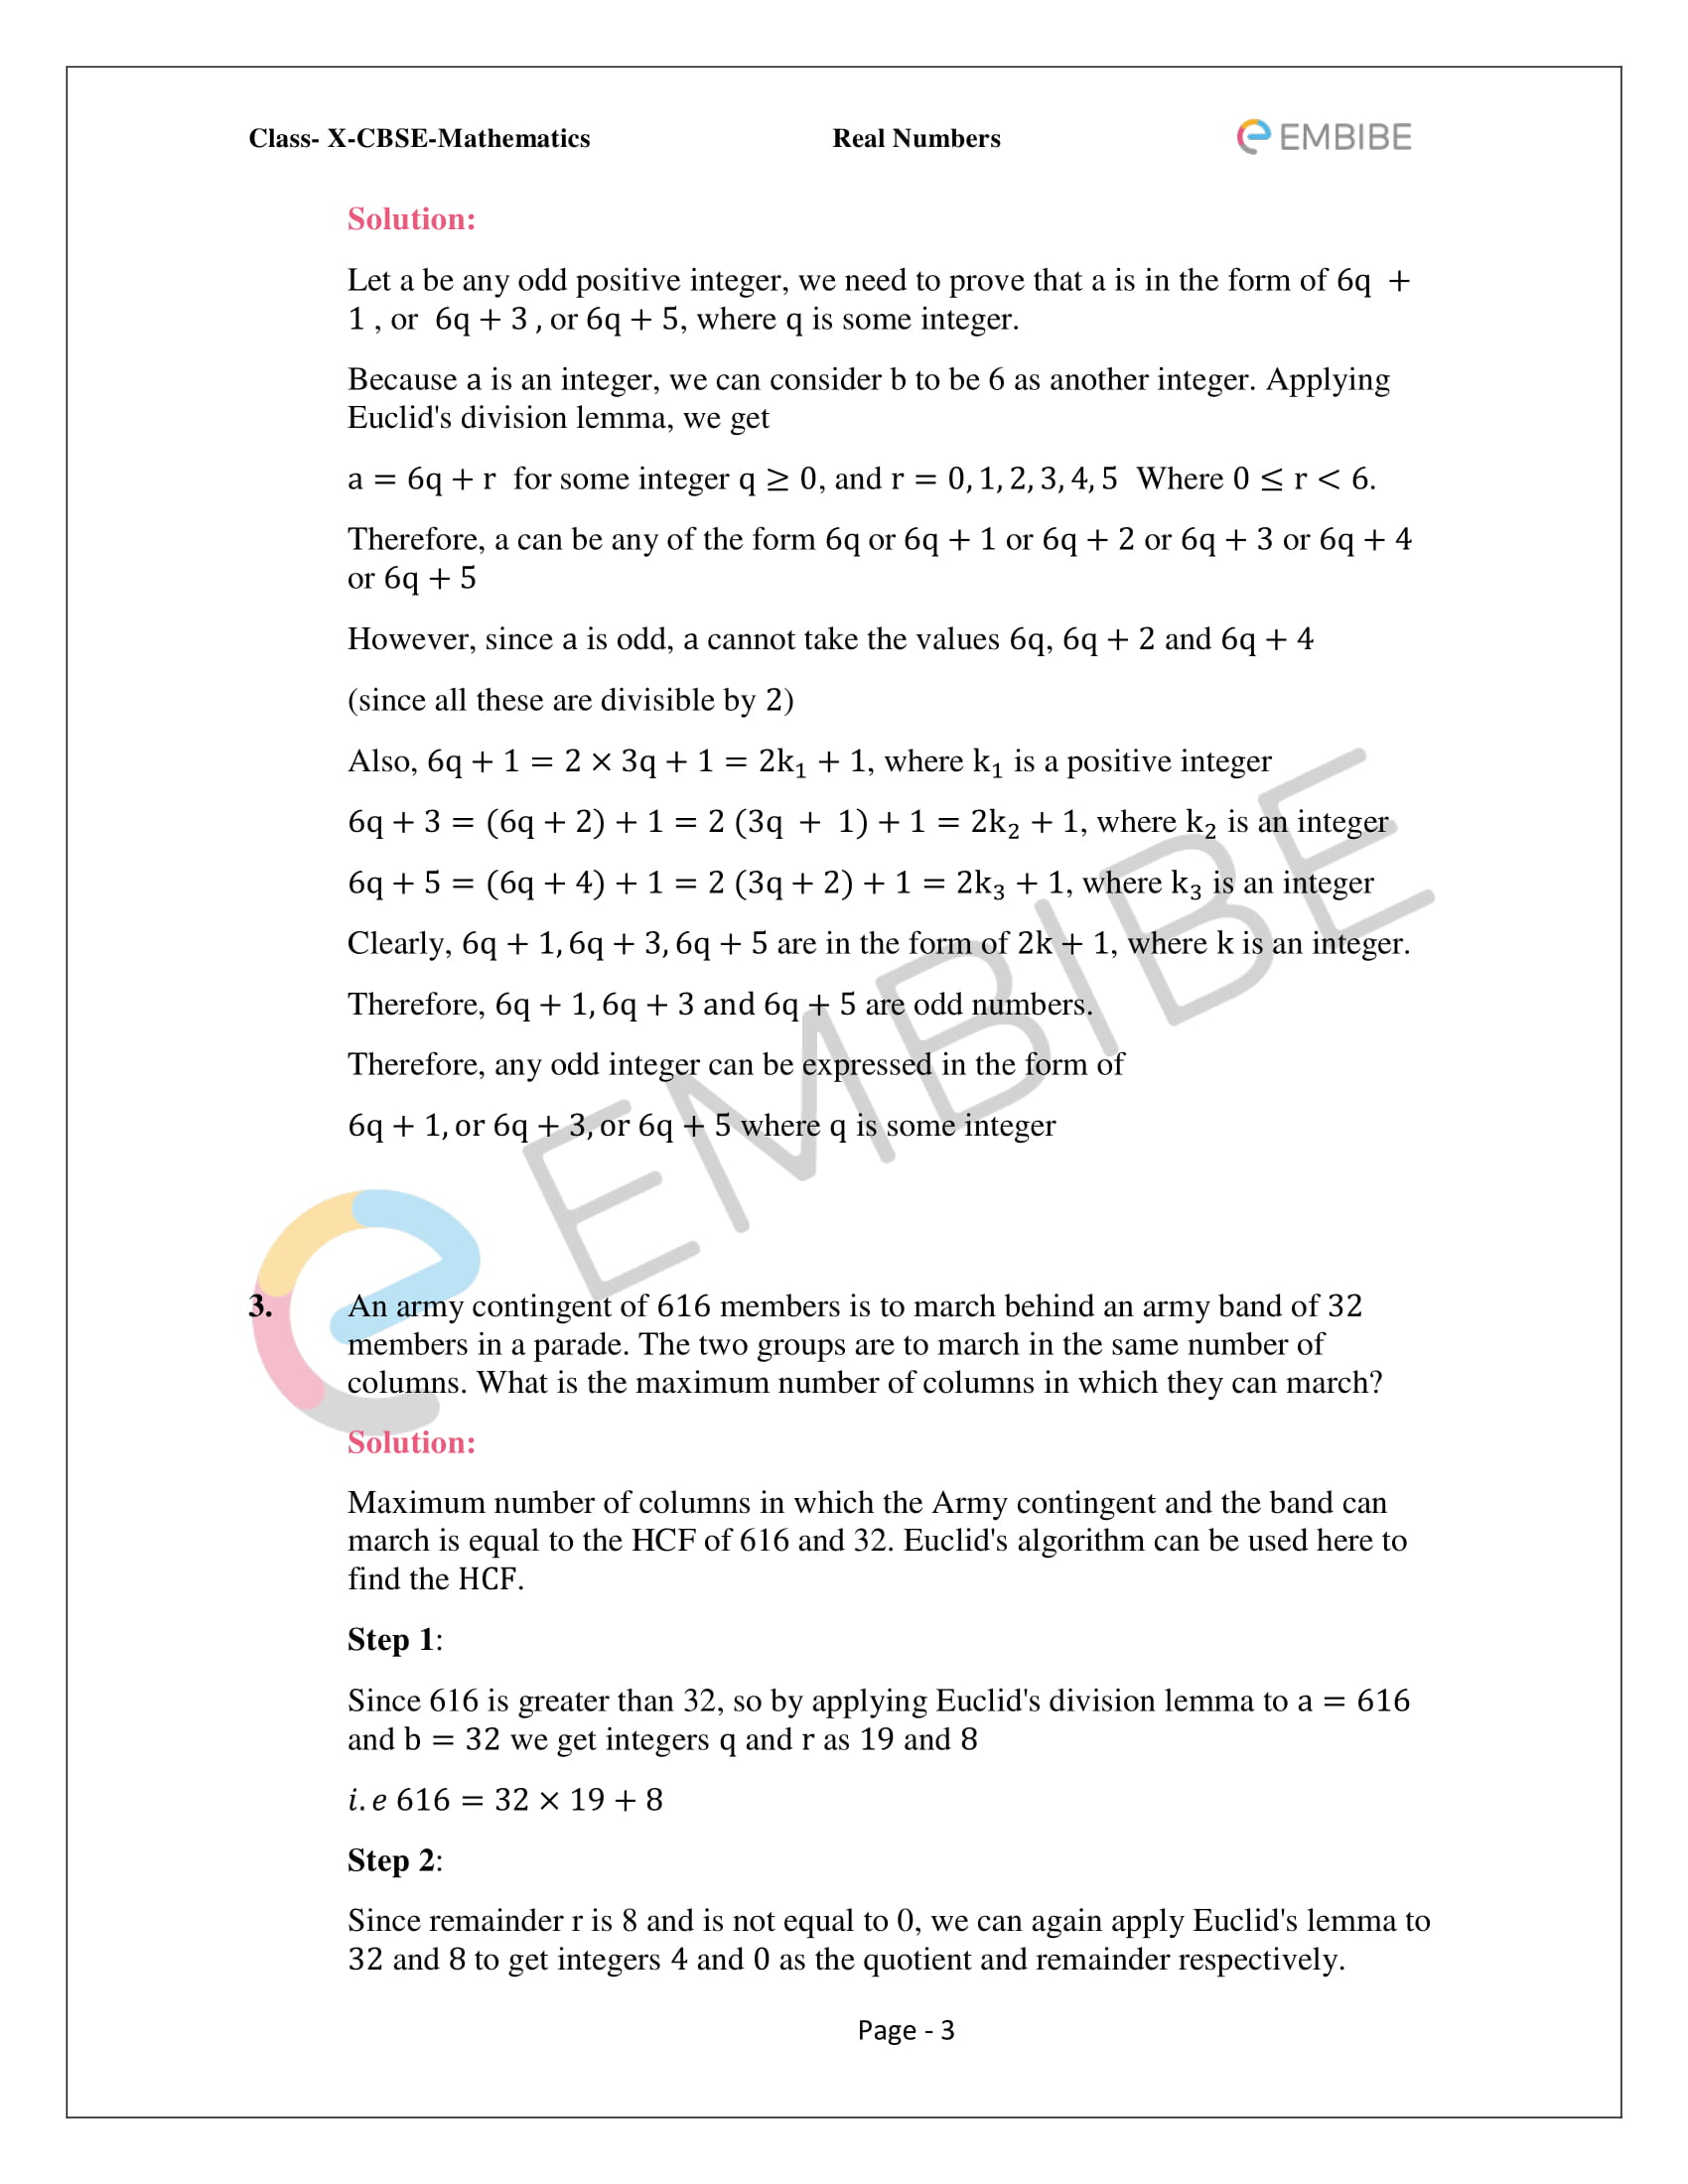 CBSE NCERT Solutions For Class 10 Maths Chapter 1 - Real Numbers - 3